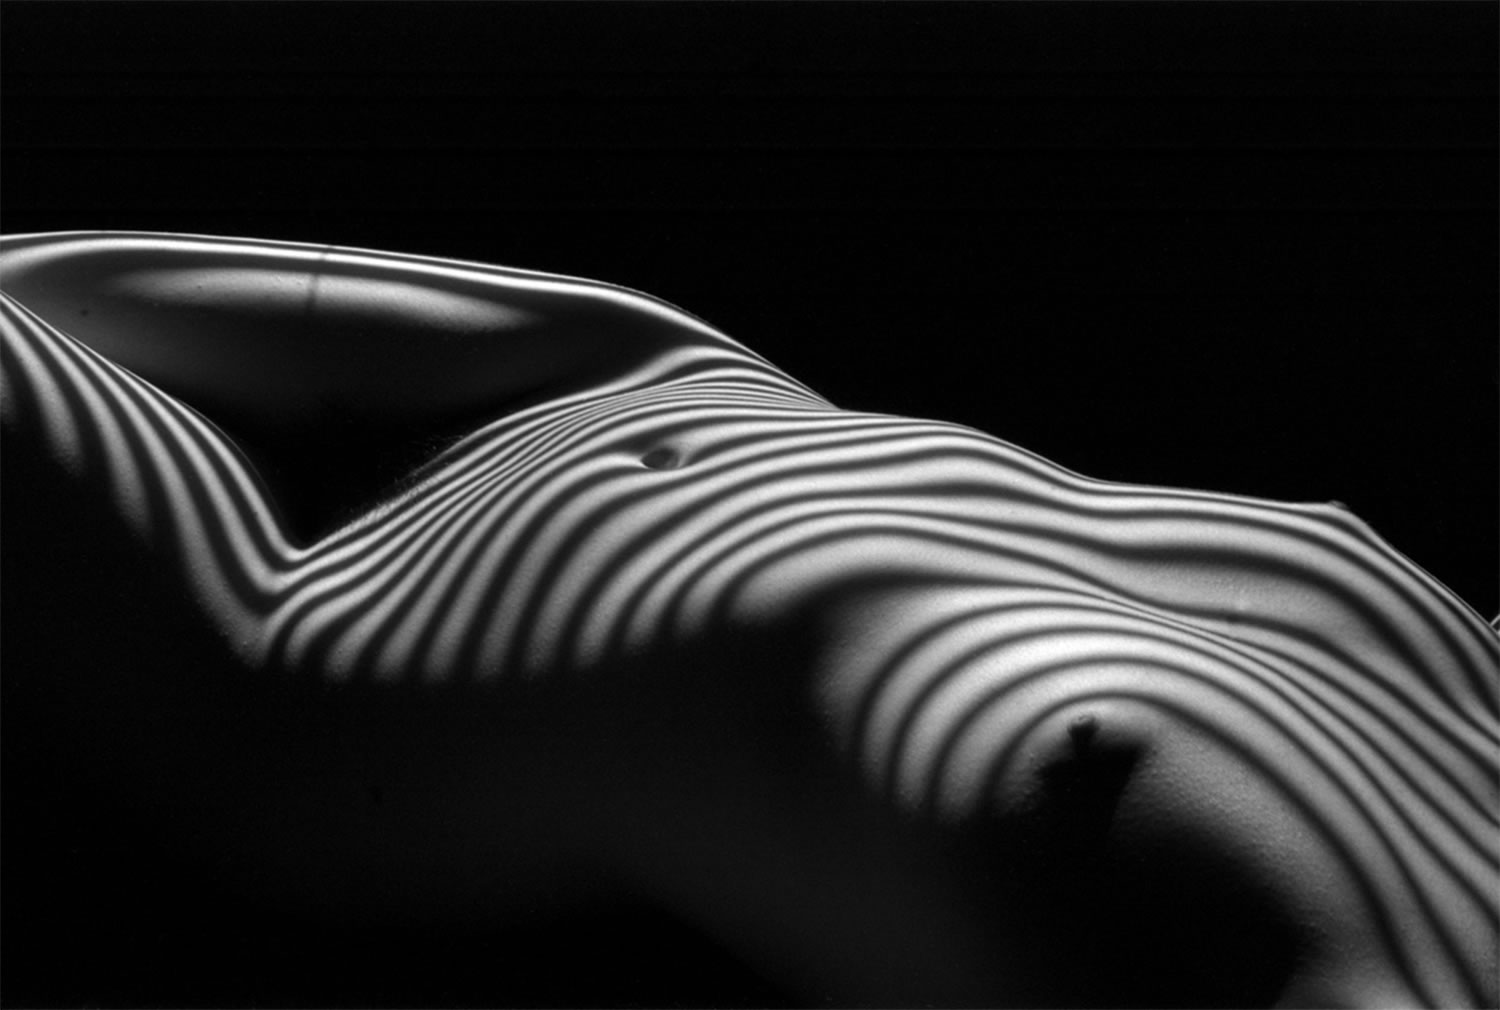 stripes on female body, photo by Lucien Clergue